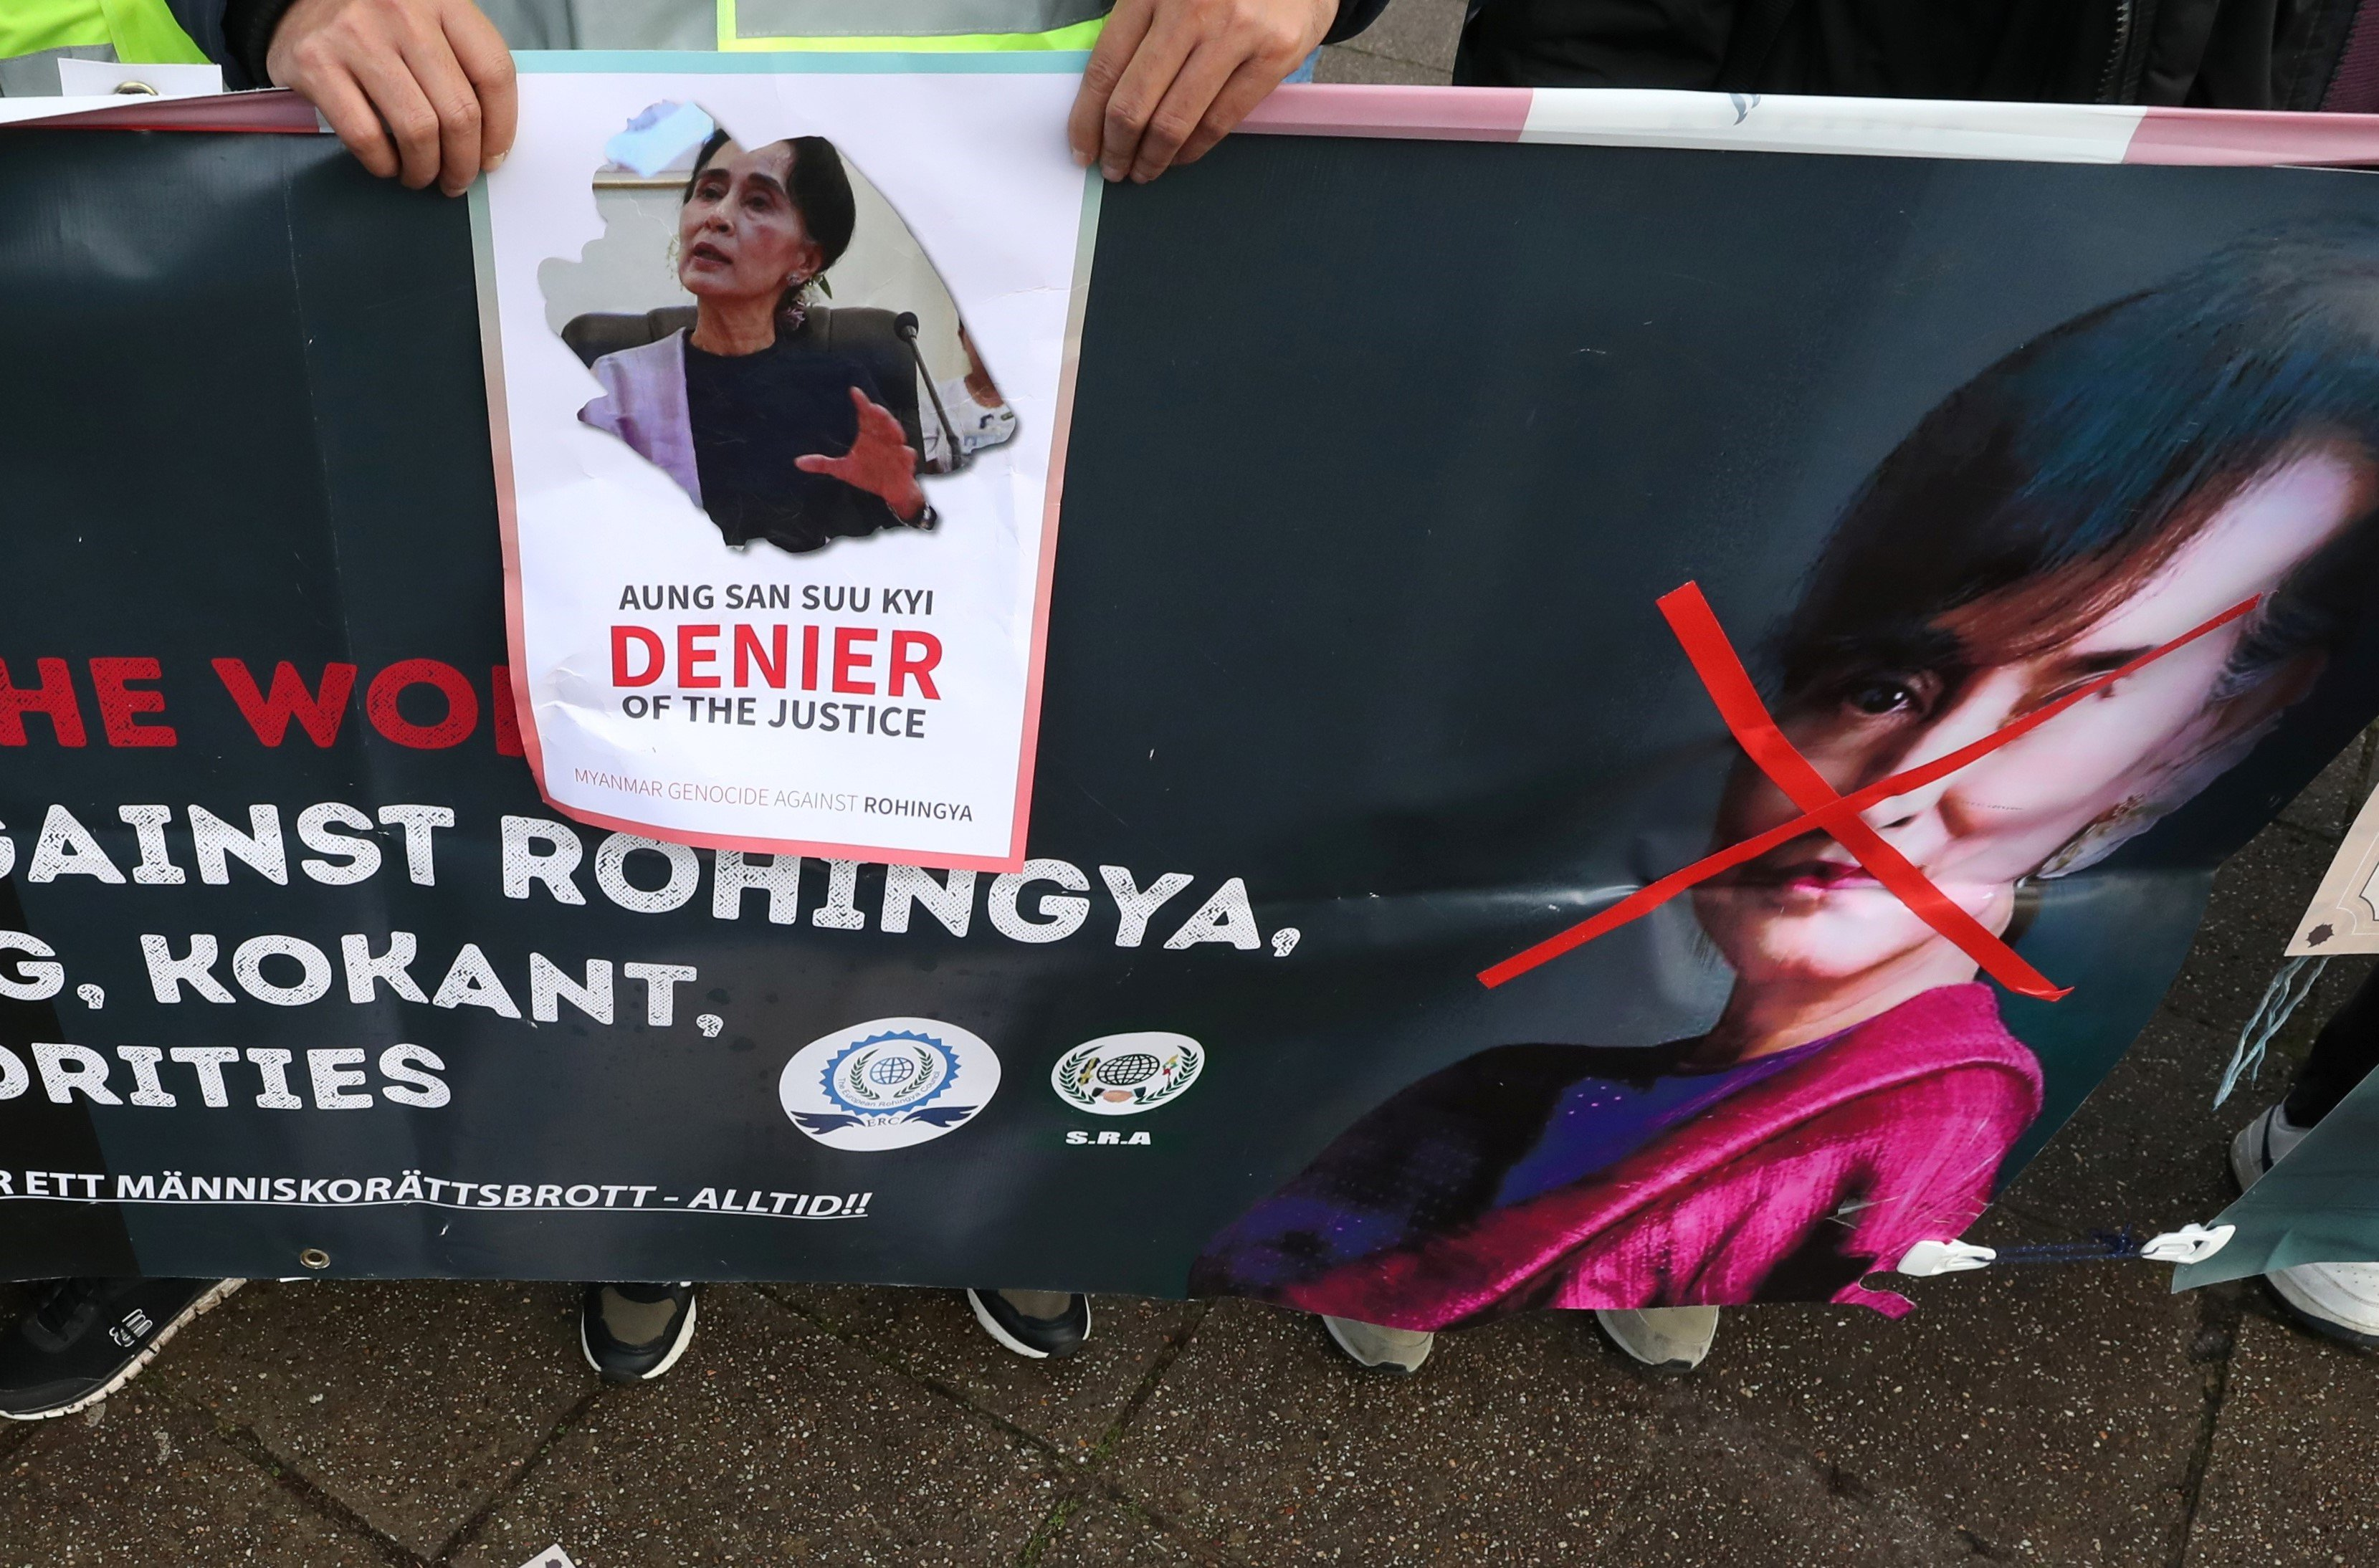 People protest against Myanmar's leader Aung San Suu Kyi on the second day of hearings in a case filed by Gambia against Myanmar alleging genocide against the minority Muslim Rohingya population, outside the International Court of Justice (ICJ) in The Hague, Netherlands December 11, 2019